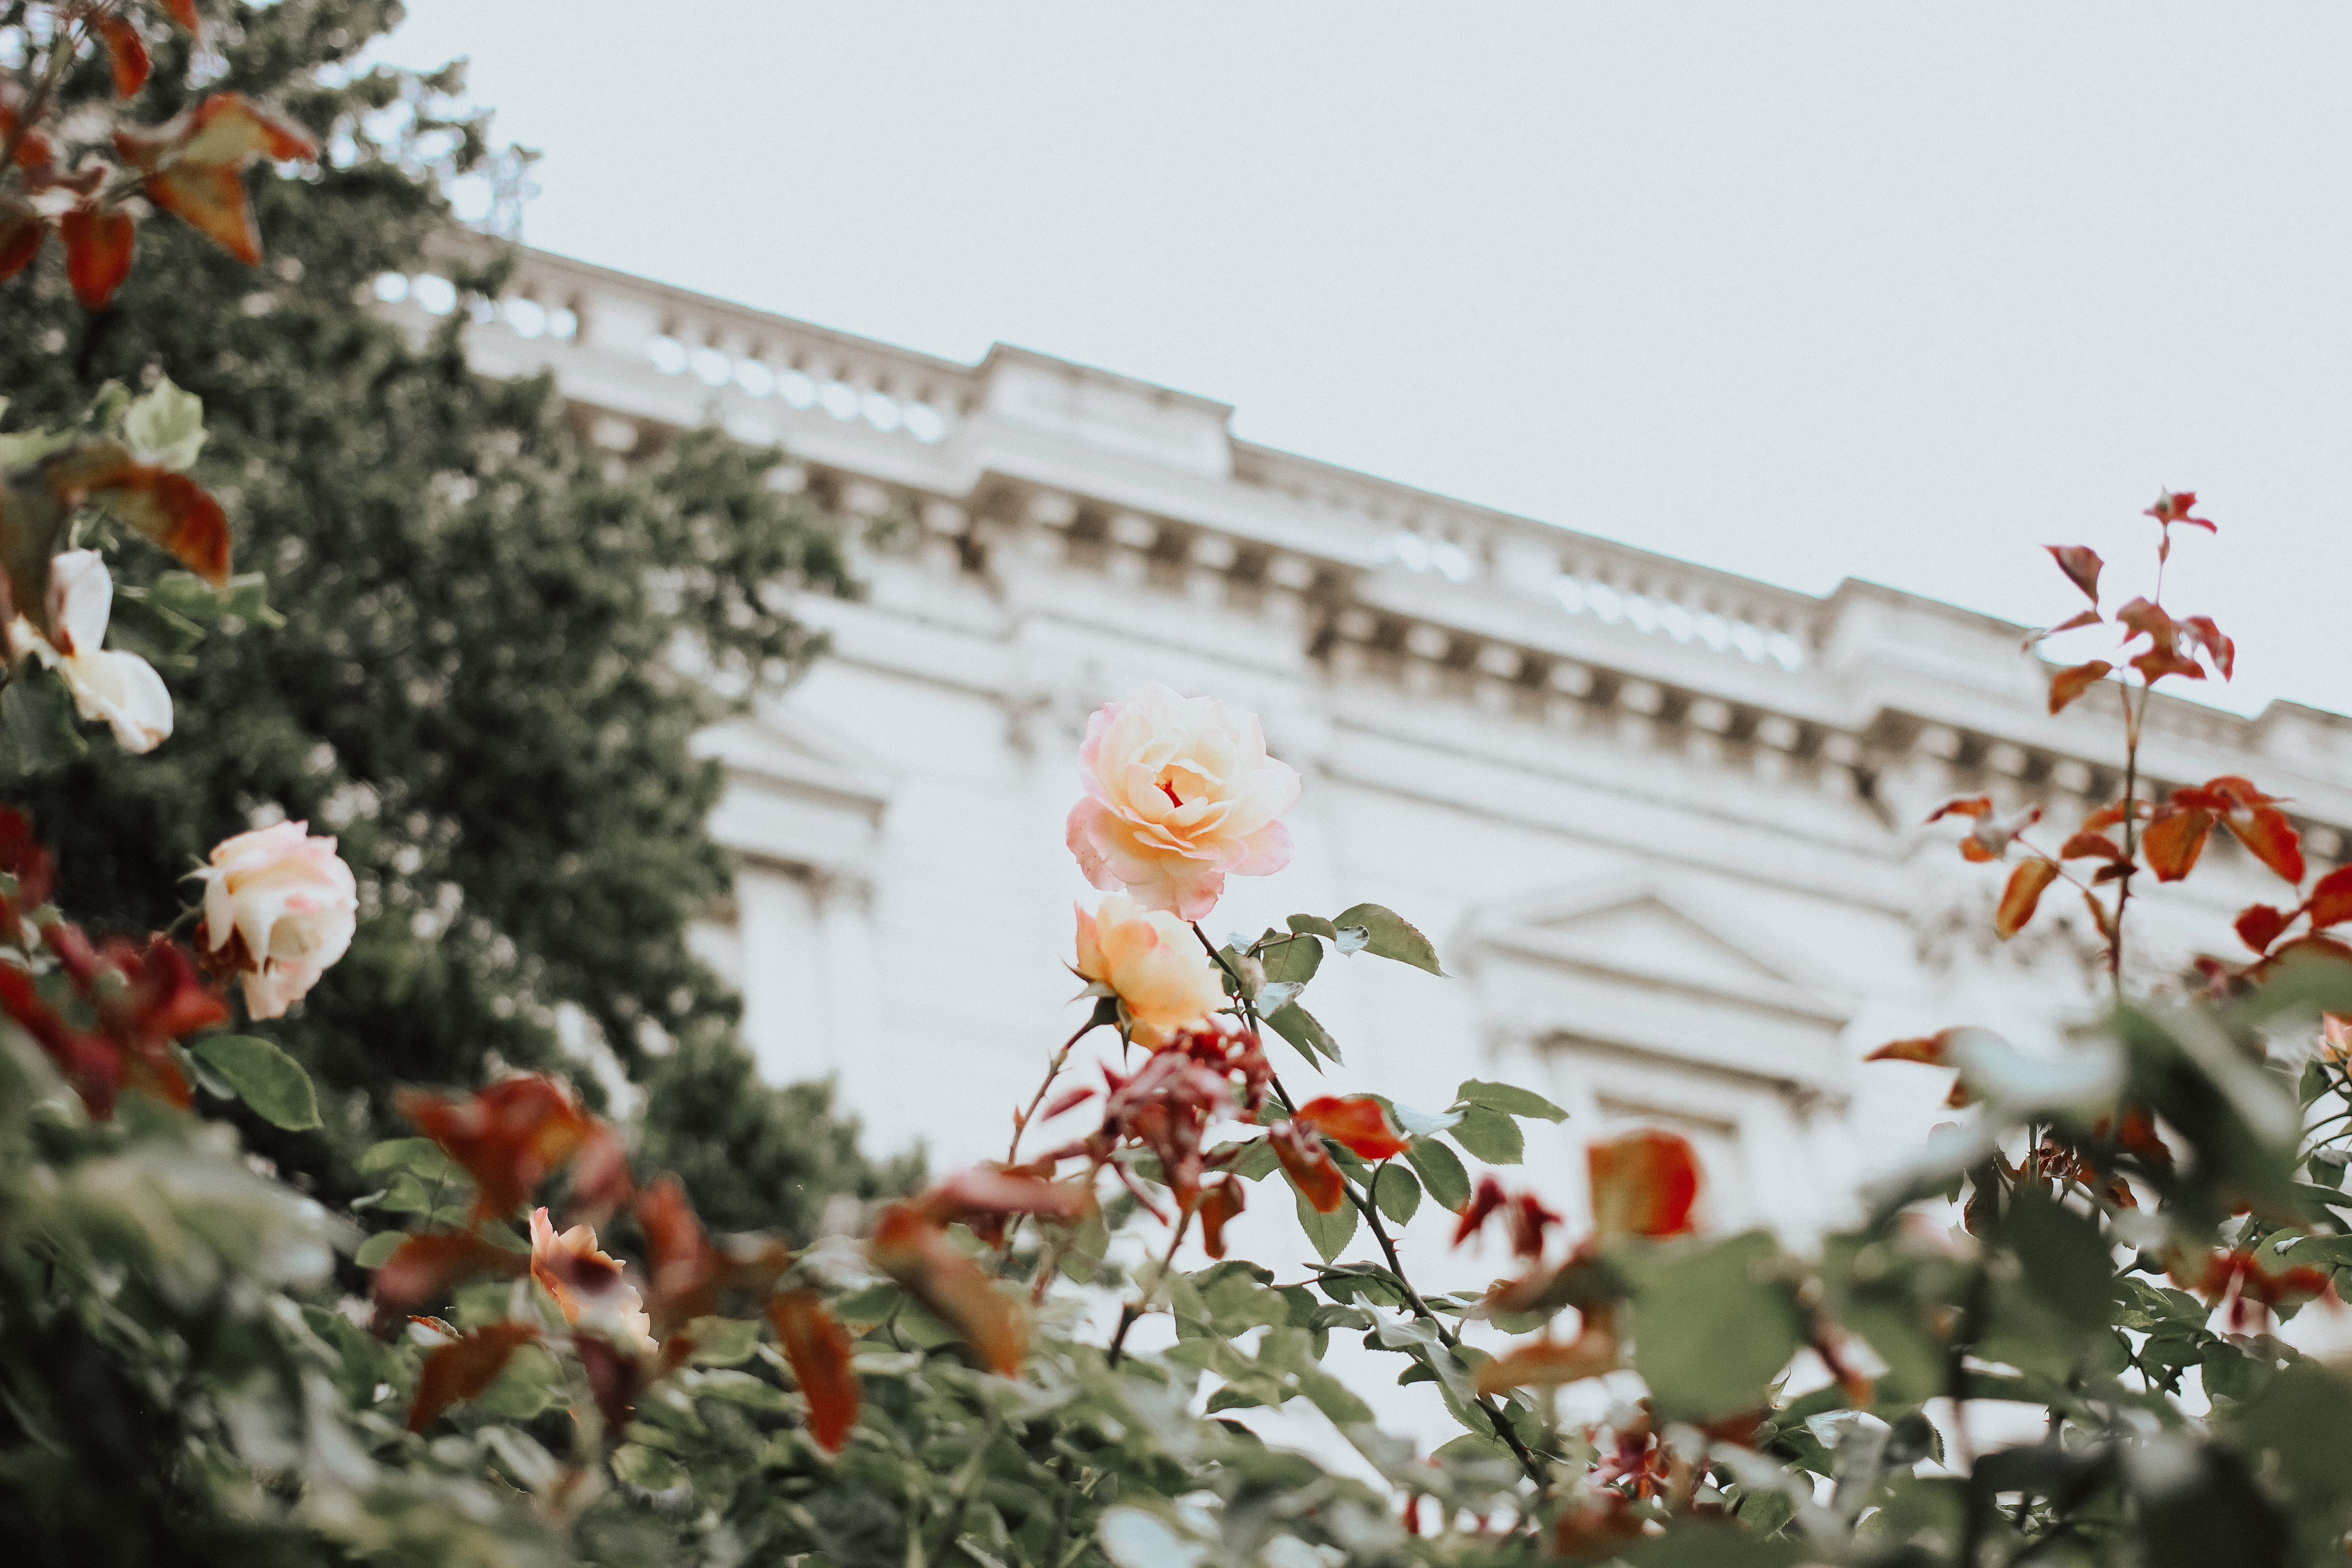 The Social Project, How To Make Friends, Social, Social Blogger, Social Media, Girl Boss, Entrepreneur, Creative, Collaboration, Barrie Wedding Planner, Barrie Social Media, Make Friends Club, London England, Travel, Travel Photography, St Pauls Catherdral